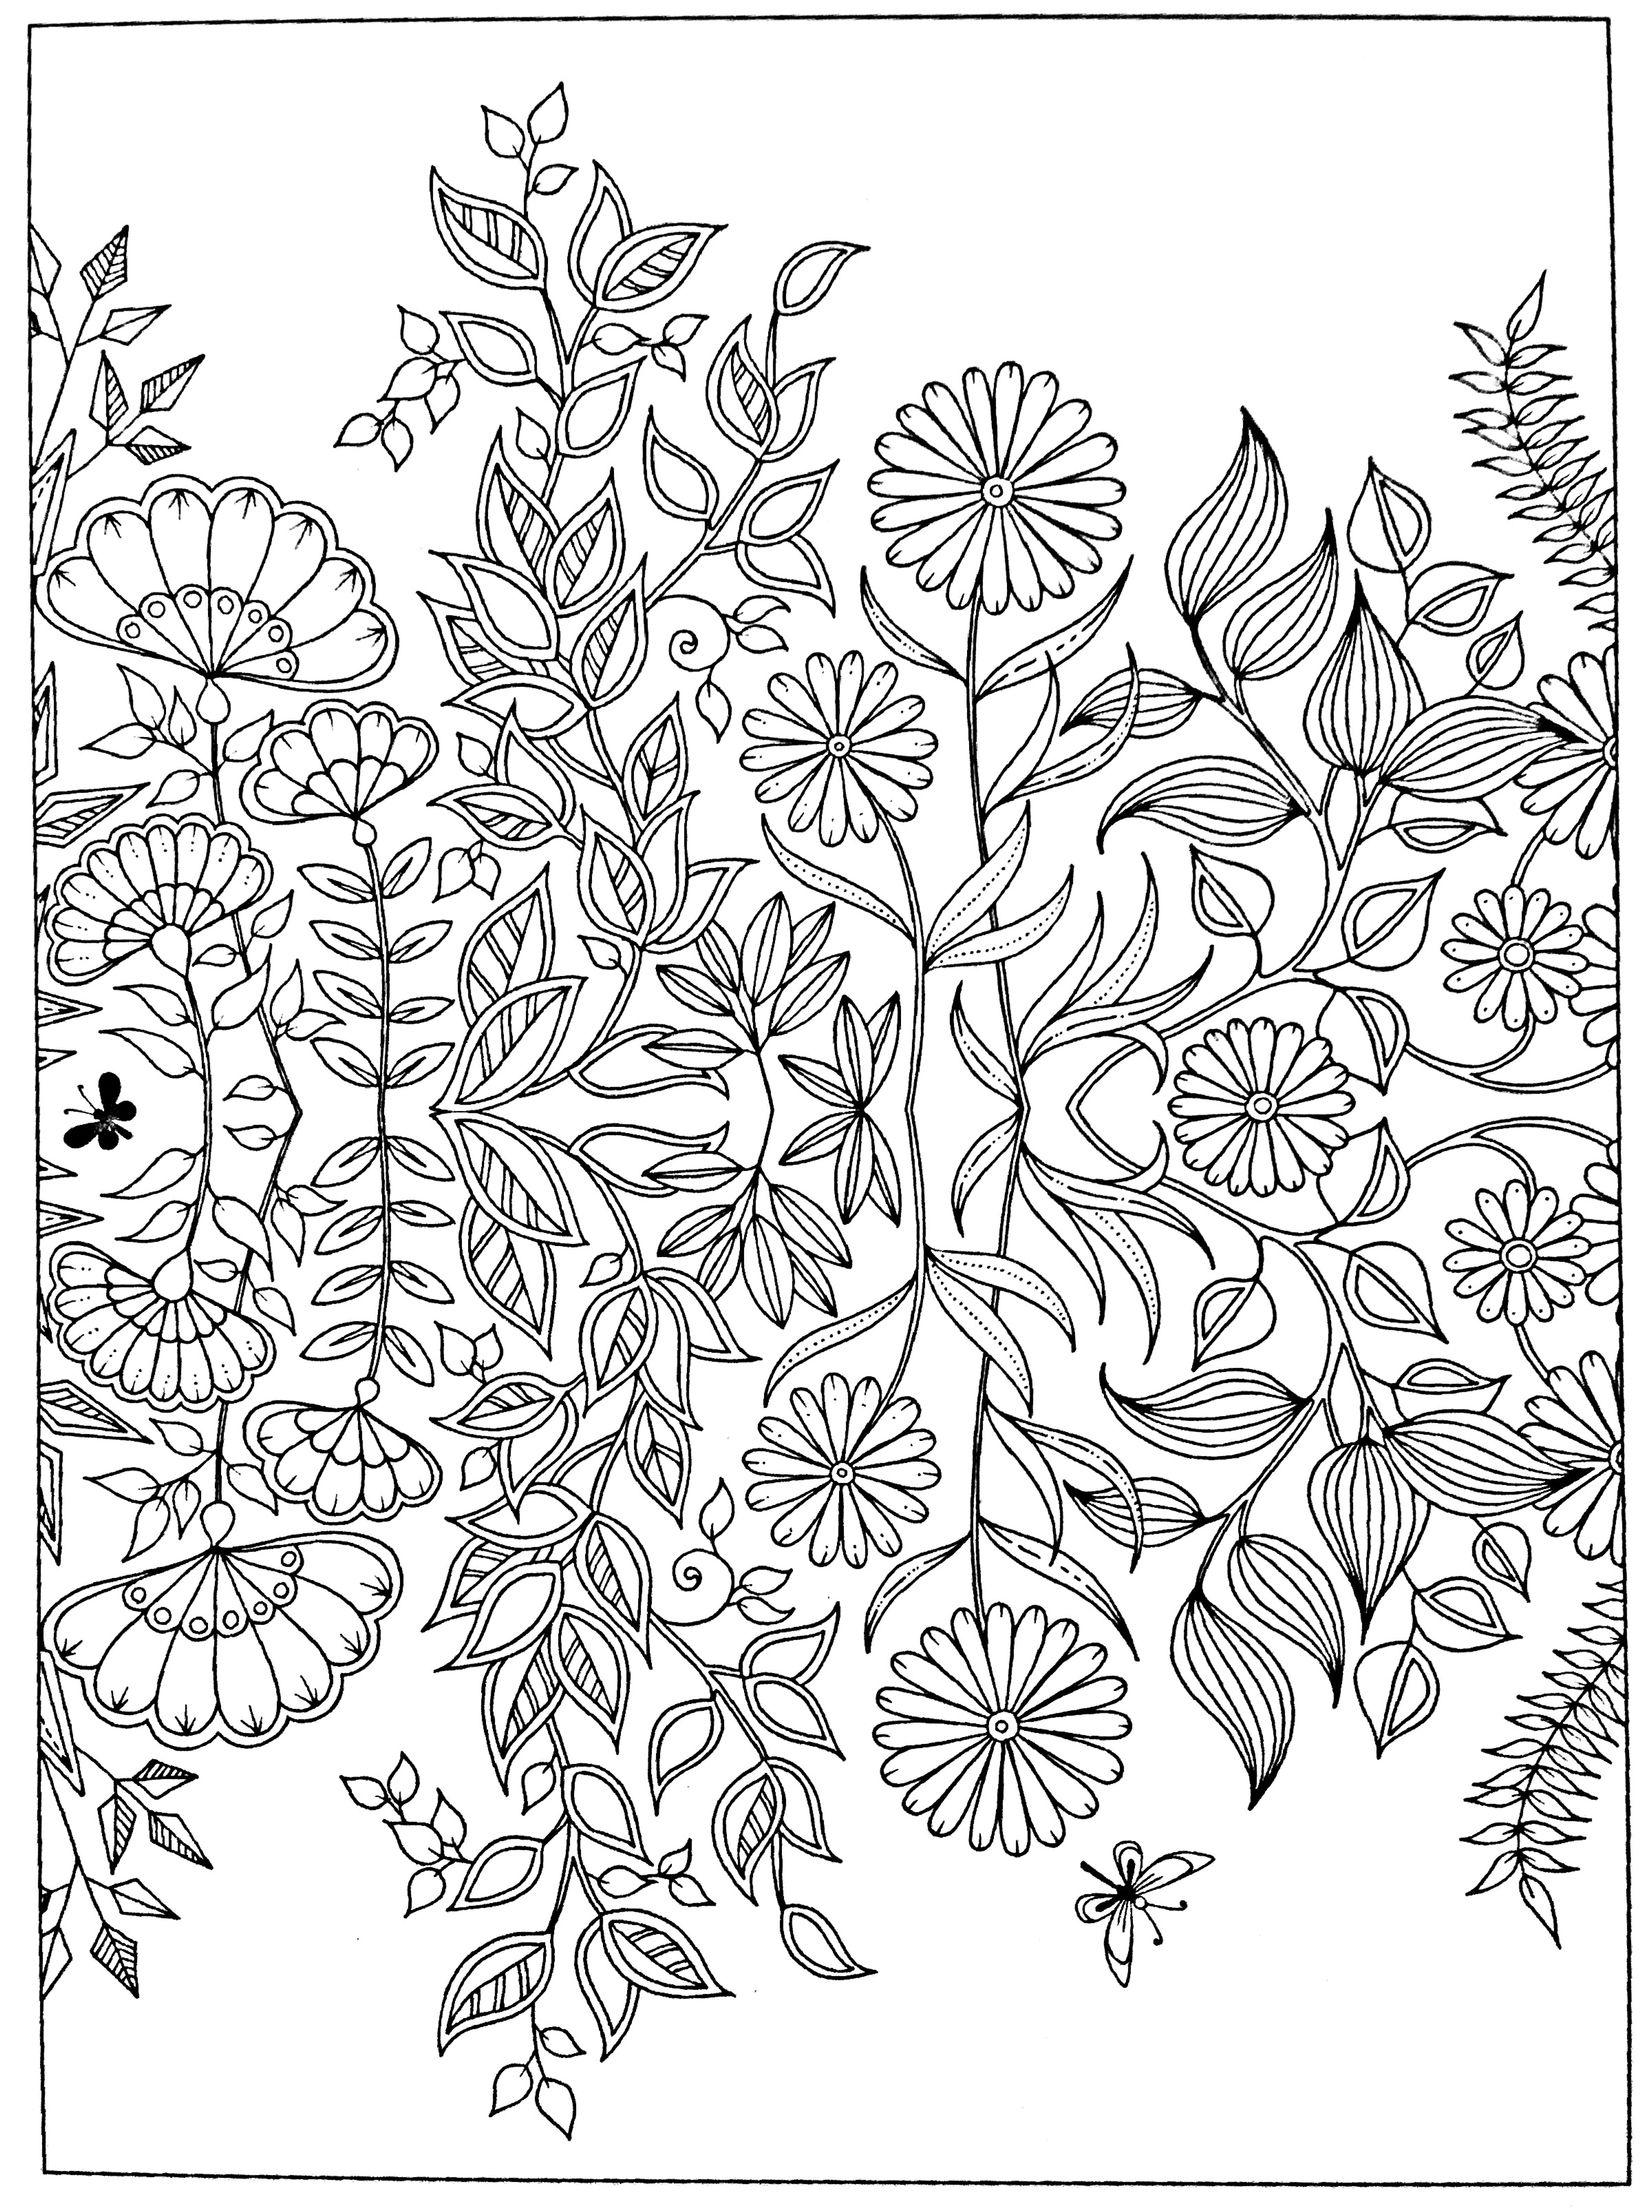 Free adult coloring page Secret Garden | Coloring Pages ...